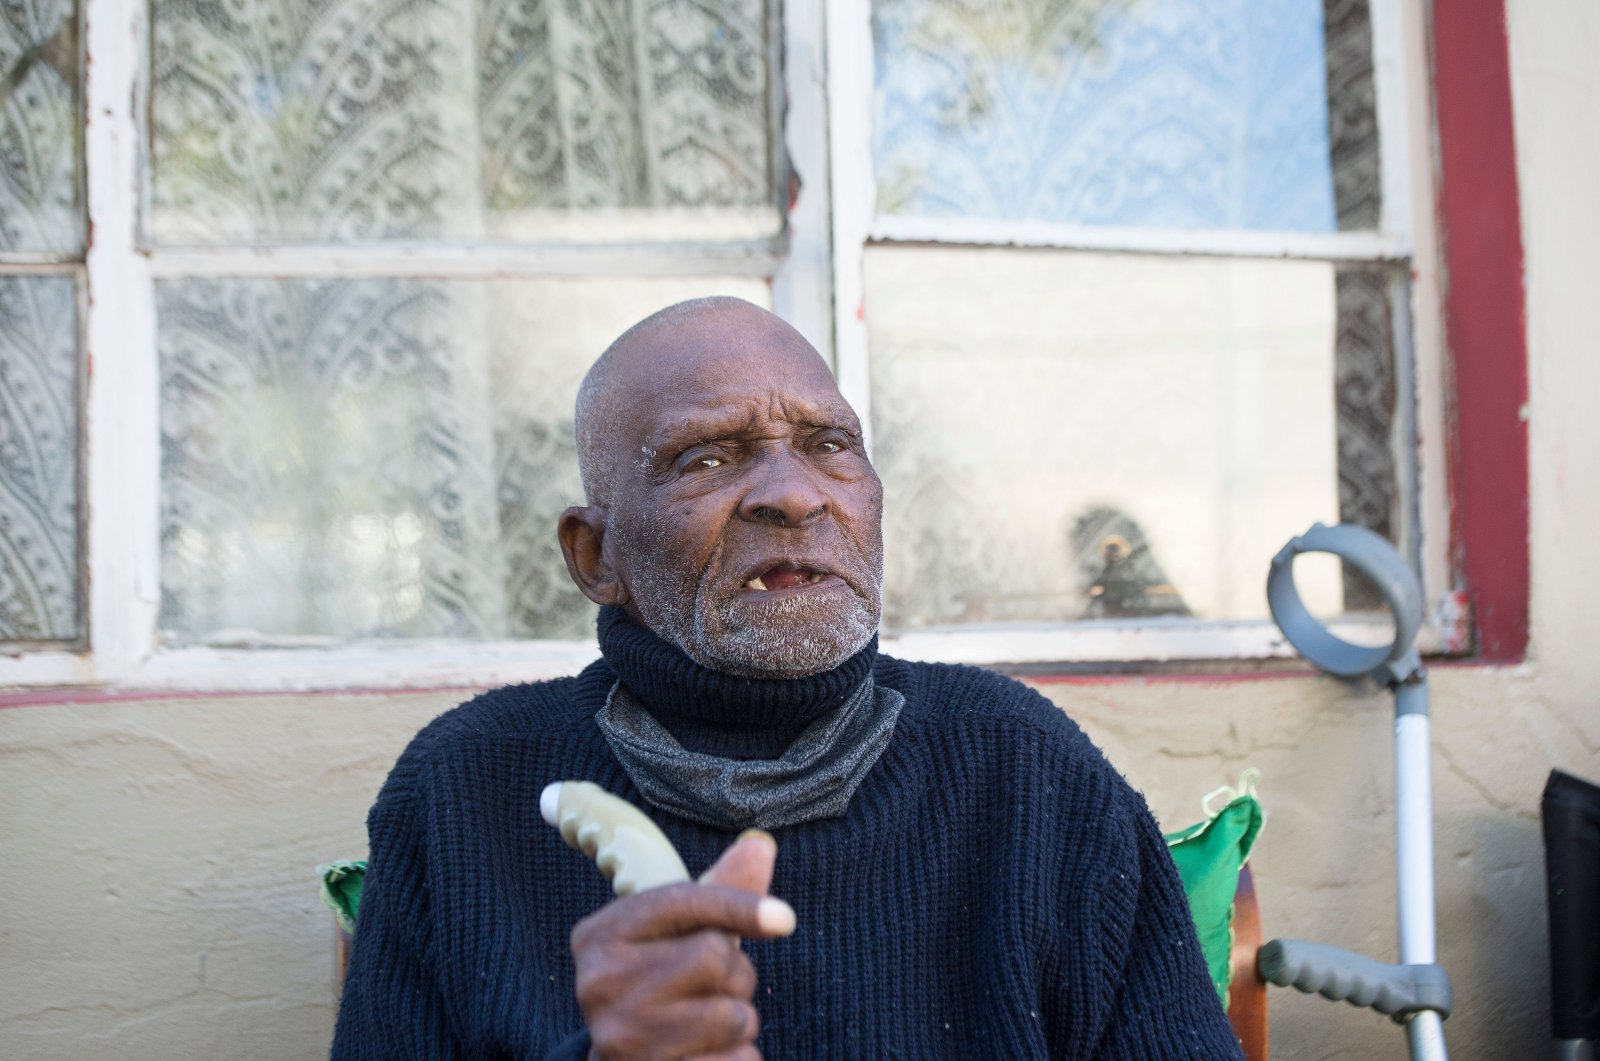 Fredie Blom talks about his recollections as he celebrates his 116th birthday at his home in Delft, near Cape Town on May 8, 2020. (AFP Photo)